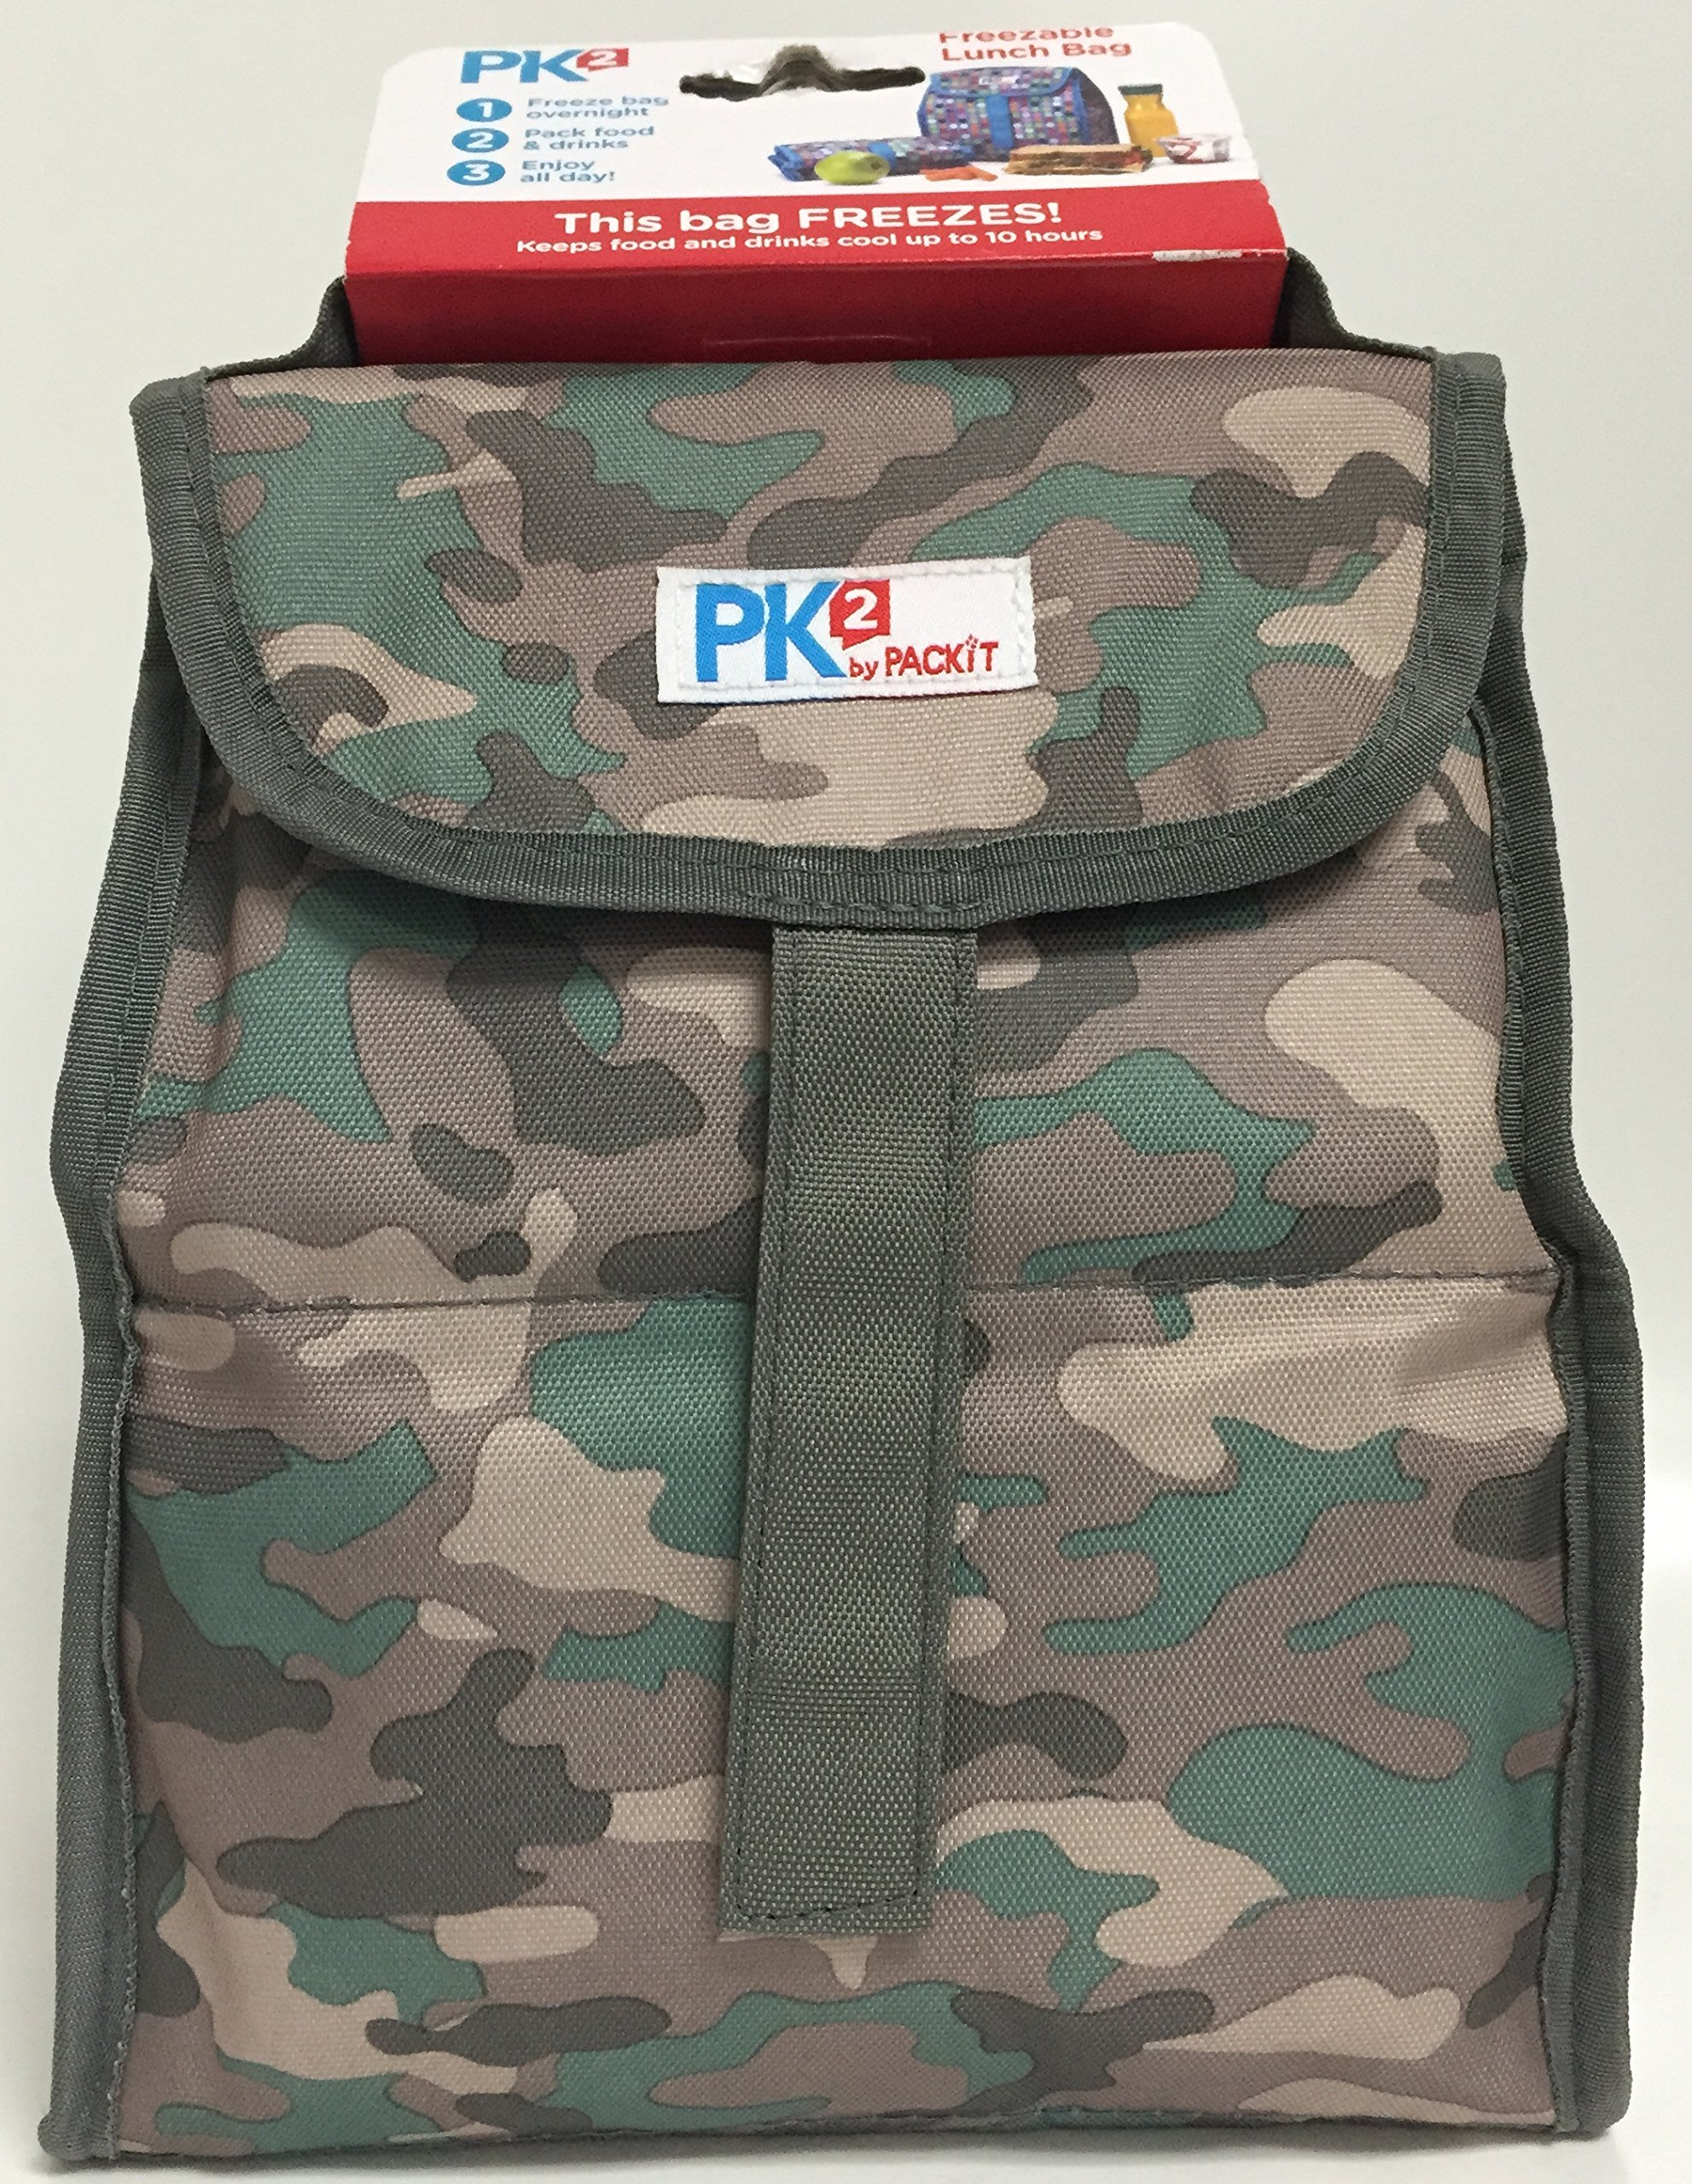 PackIt Freezable (Green Camo) Lunch Bag, One Size